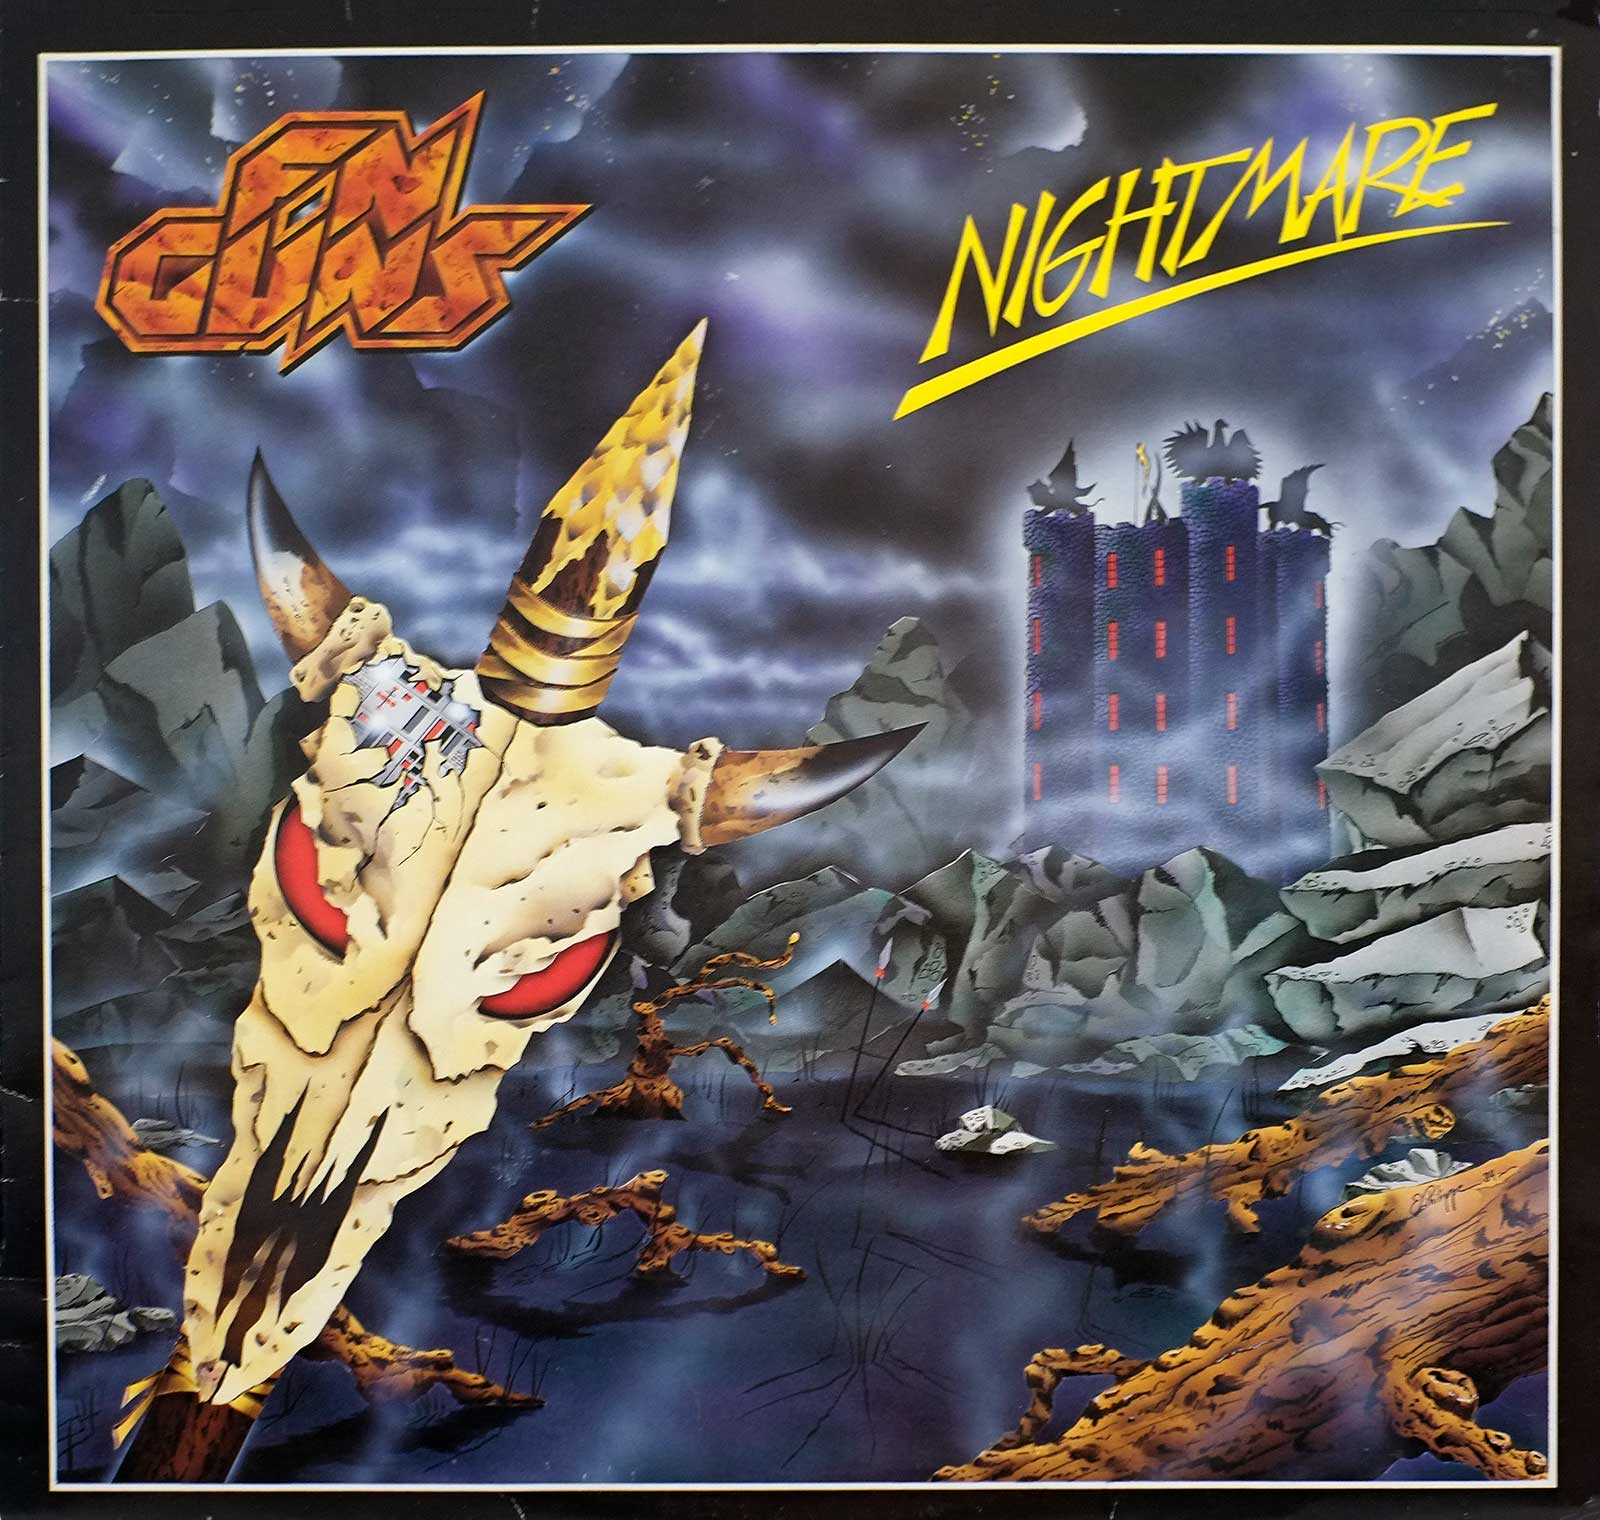 large photo of the album front cover of: FN GUNS - Nightmare LP